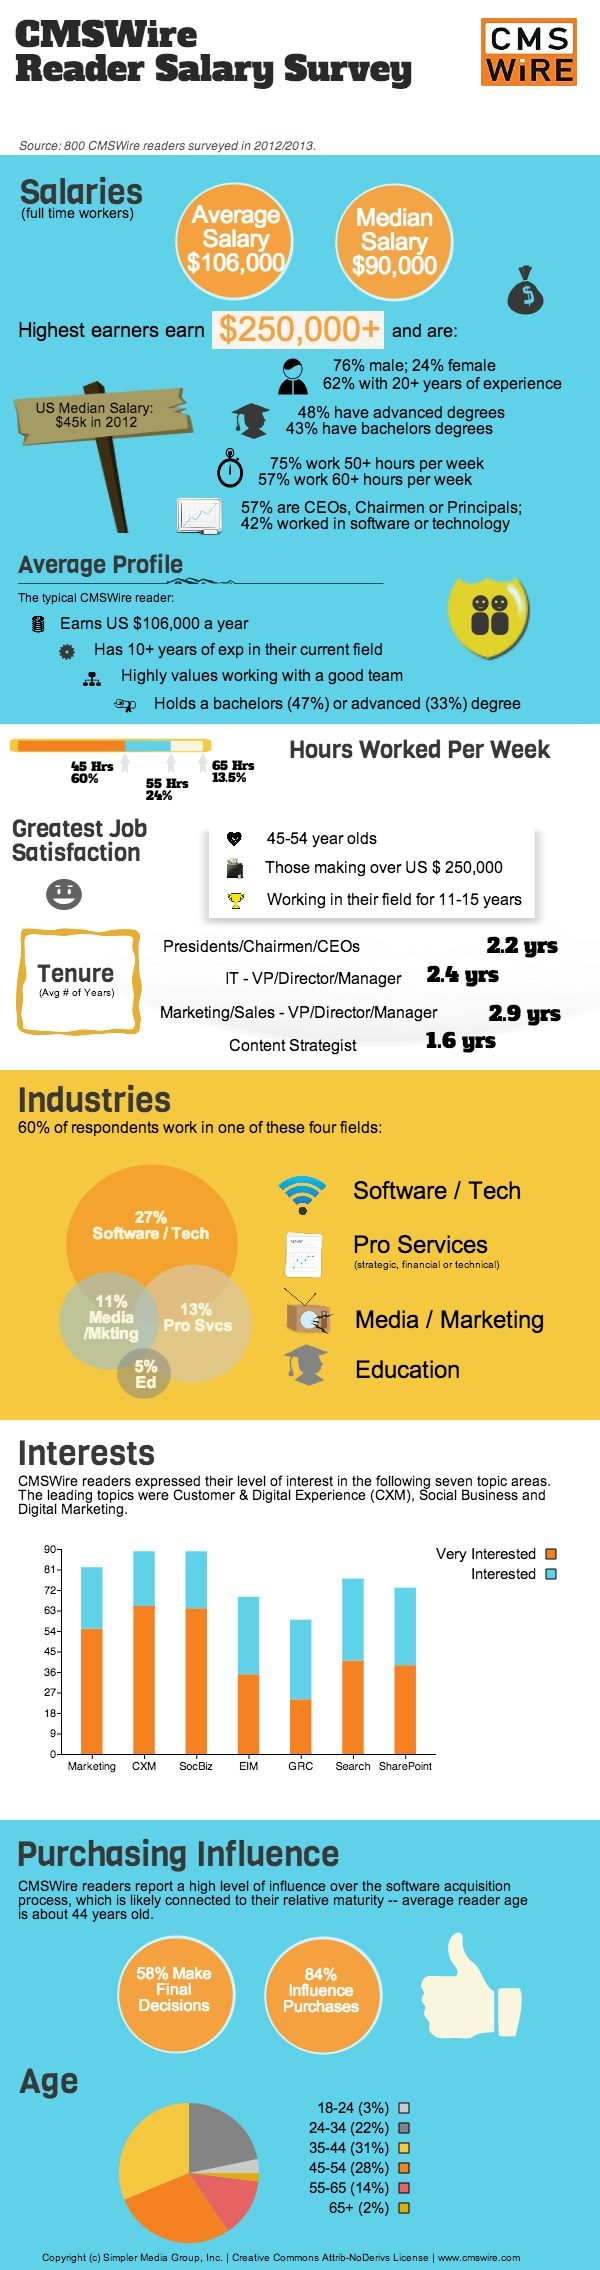 CMSWire Reader Salary Survey 2013